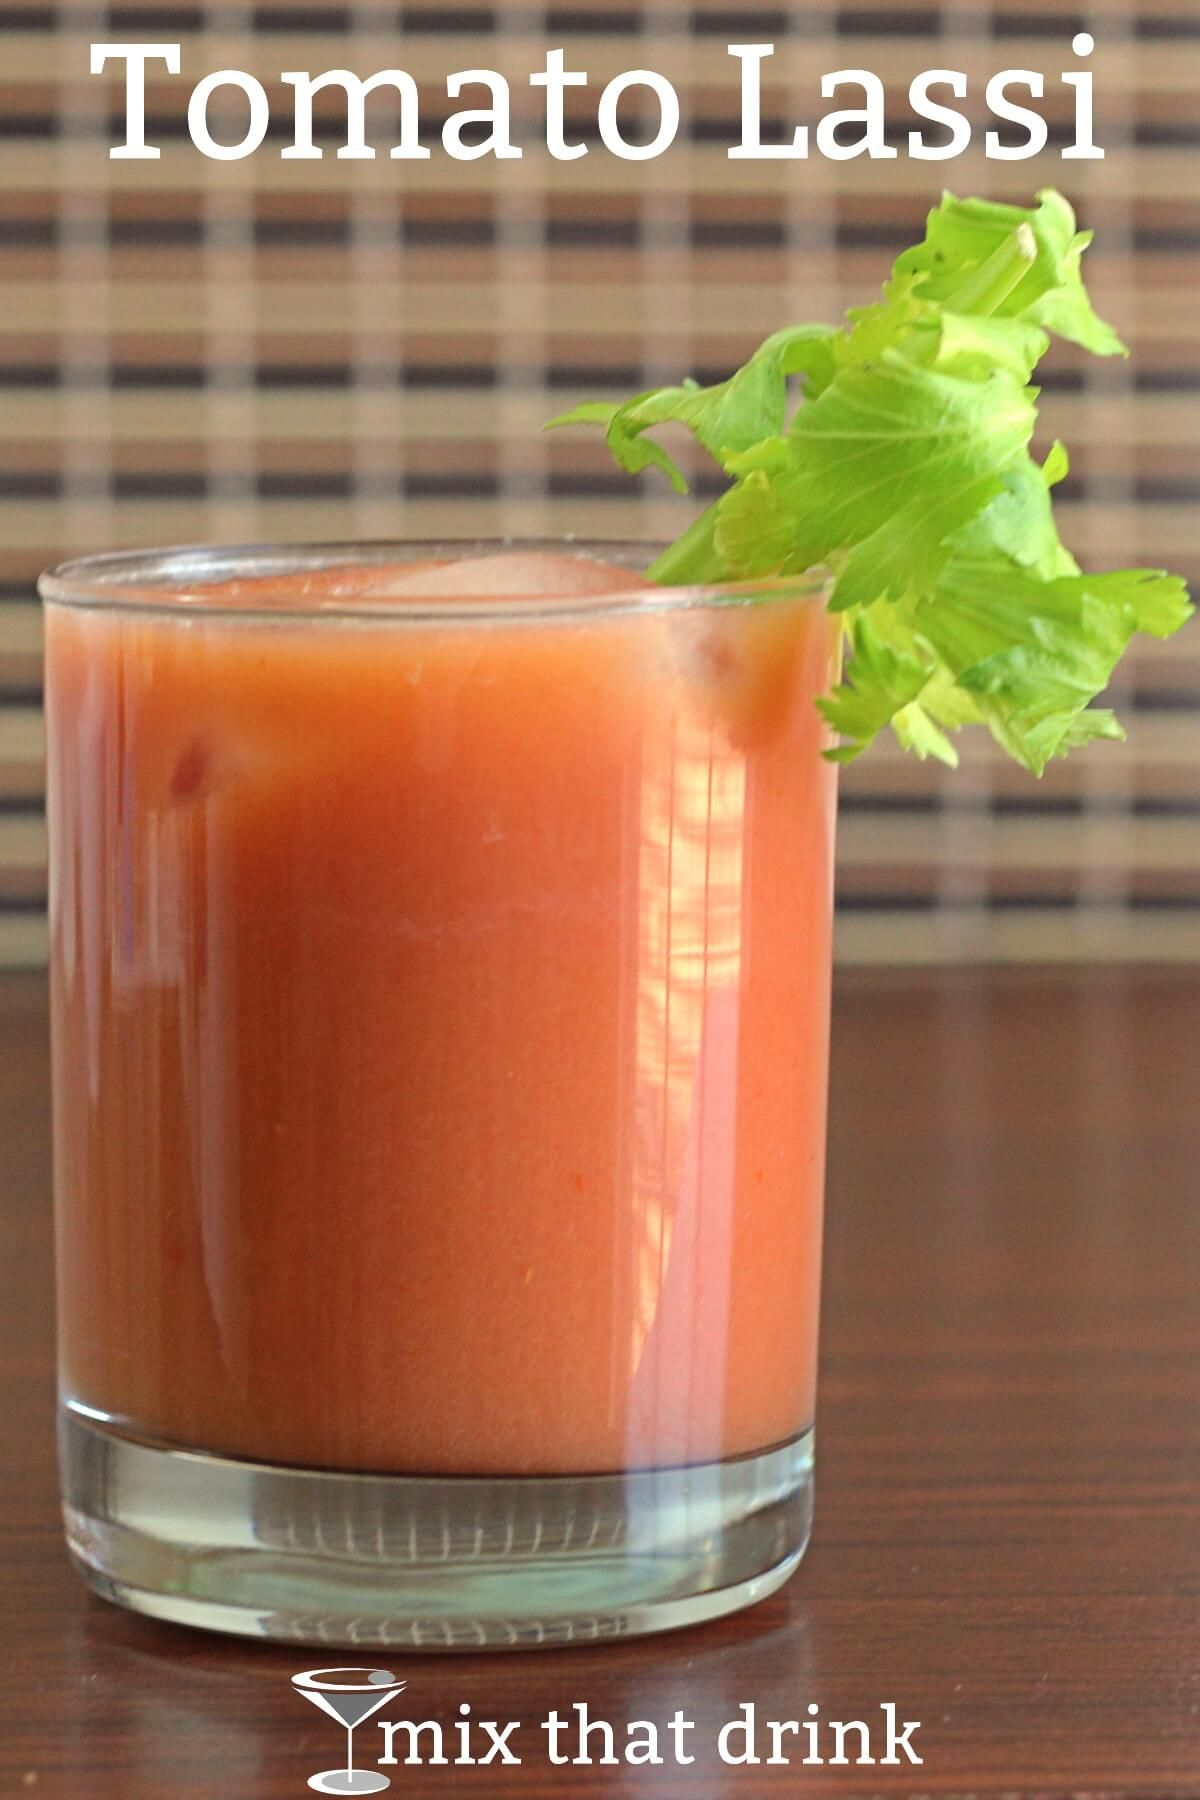 A lassi is a yogurt-based traditional Indian drink, sweetened or spiced with sugar or herbs and spices. The Tomato Lassi is a variation on that drink which adds - wait for it - yep, tomato juice, and some seasonings.